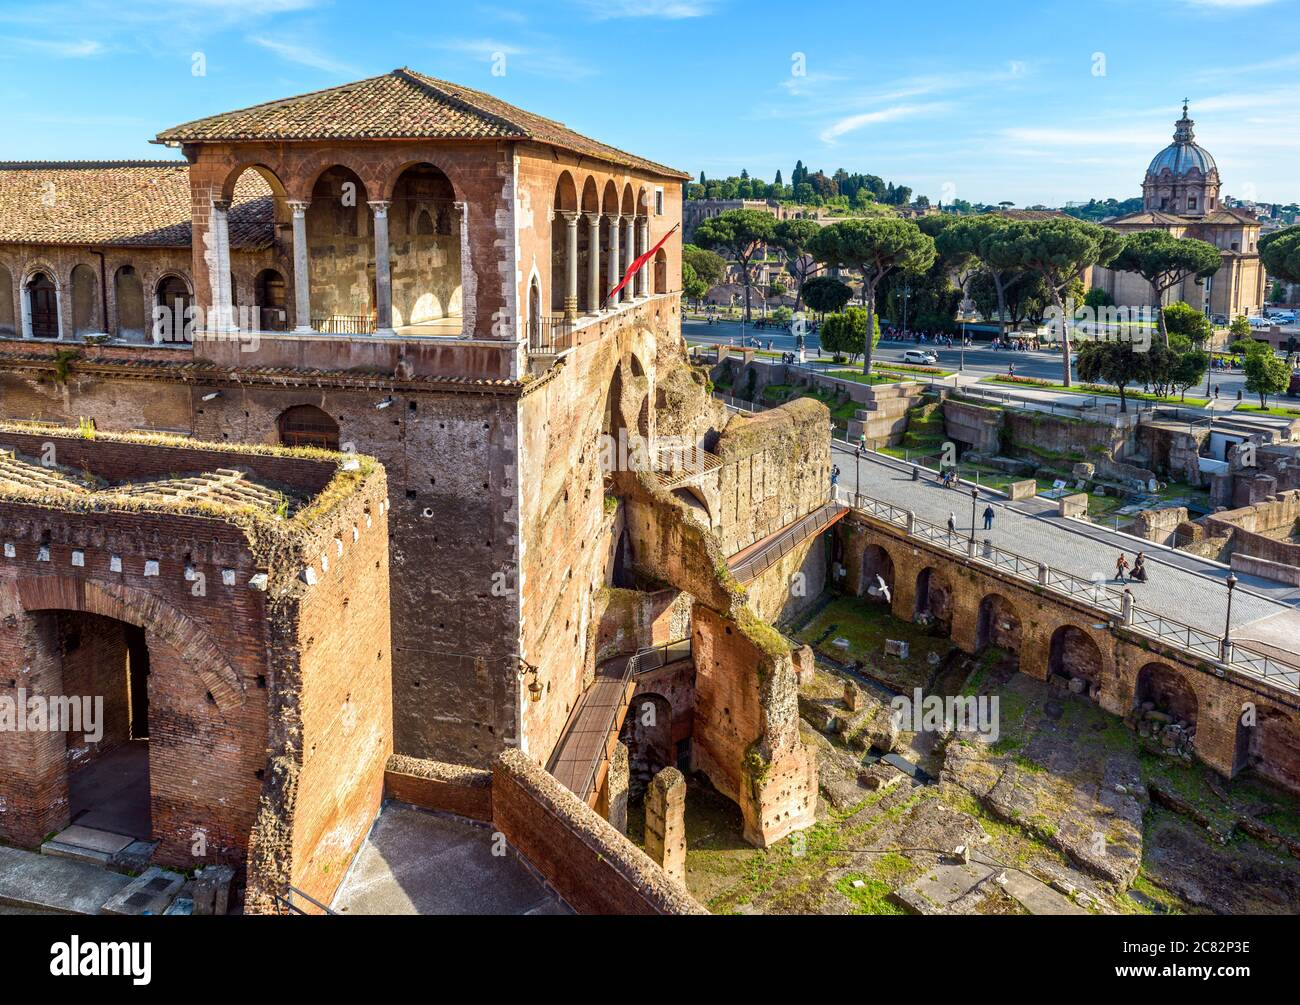 House of Knights of Rhodes on Forum of Augustus, Rome, Italy. It is old tourist attraction of Rome. Medieval building and ancient ruins in Roma city c Stock Photo